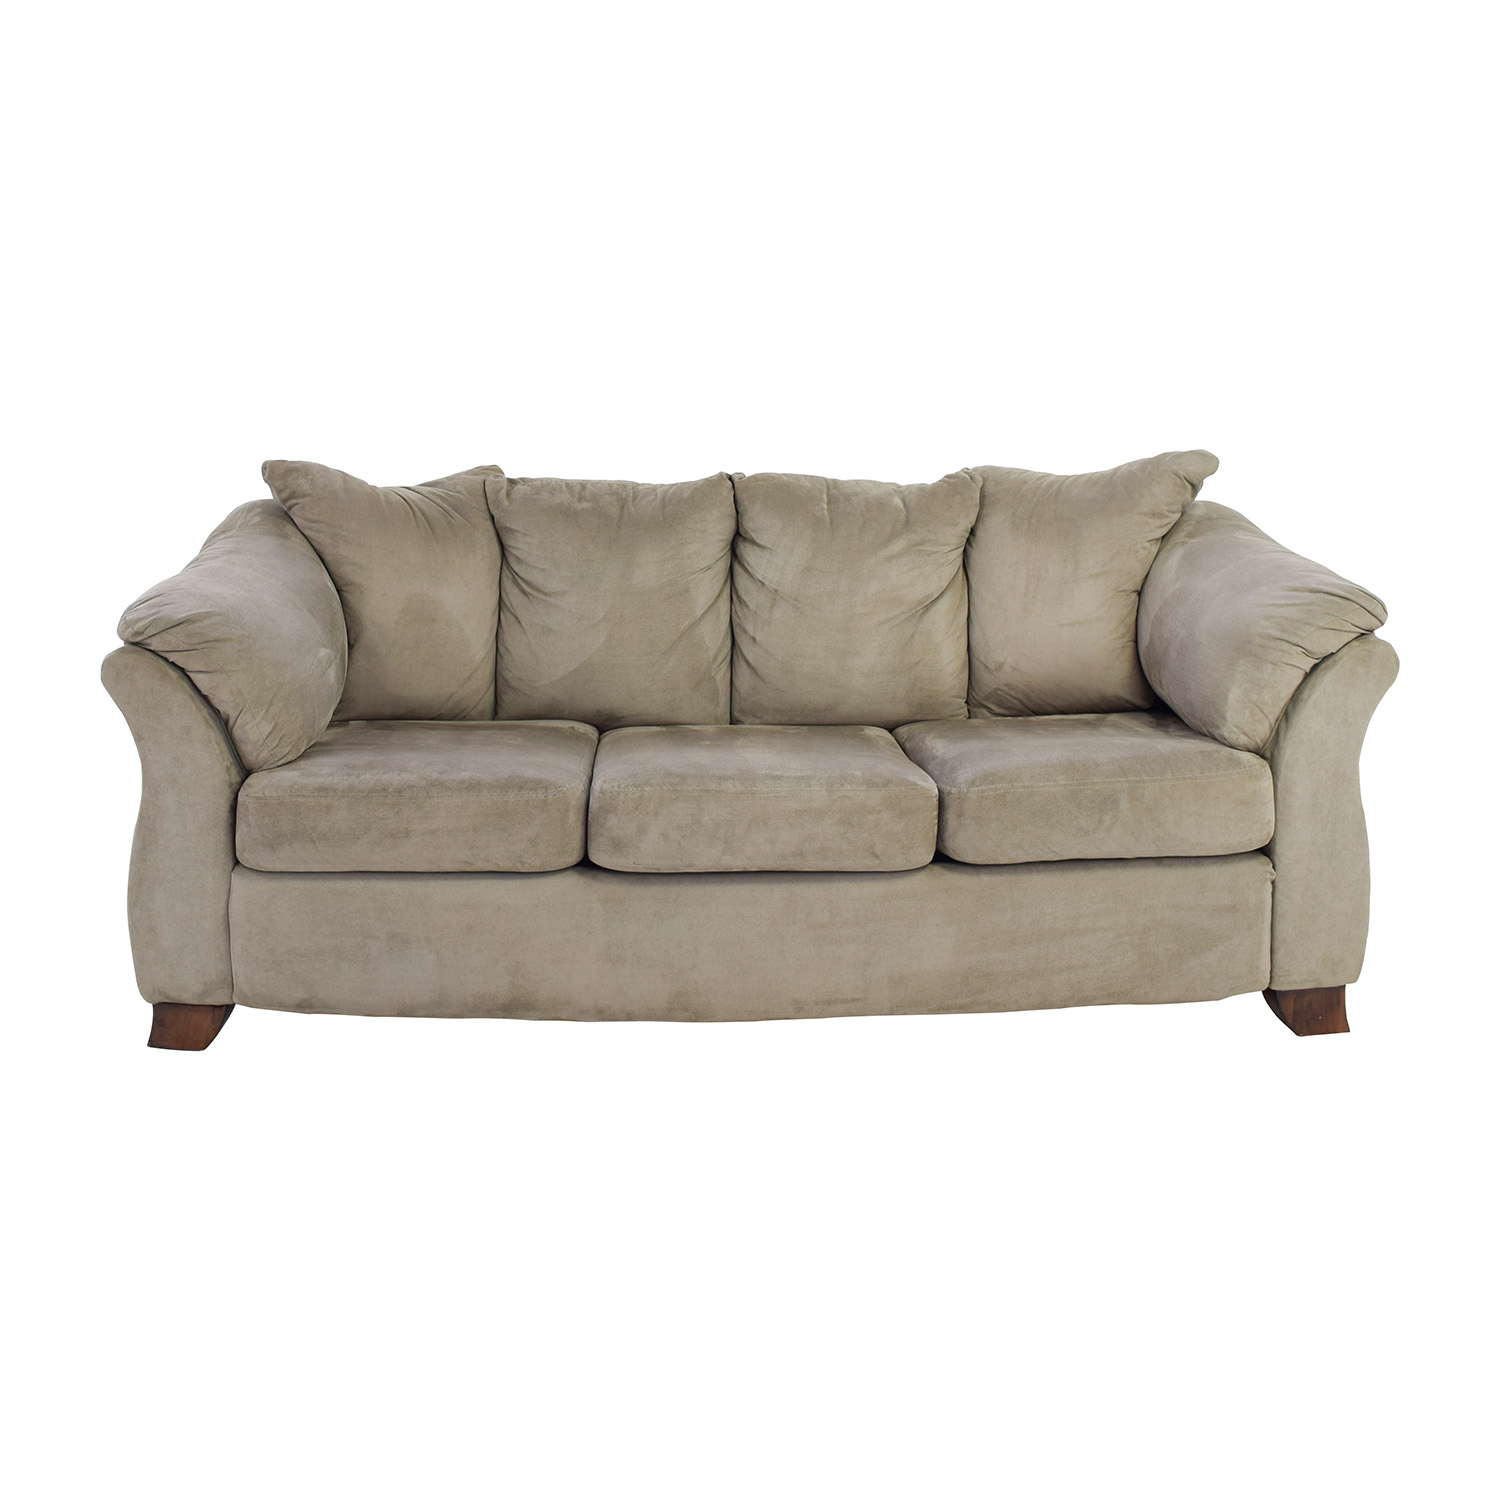 sage leather sofa express delivery 50 off west elm with ottoman sofas